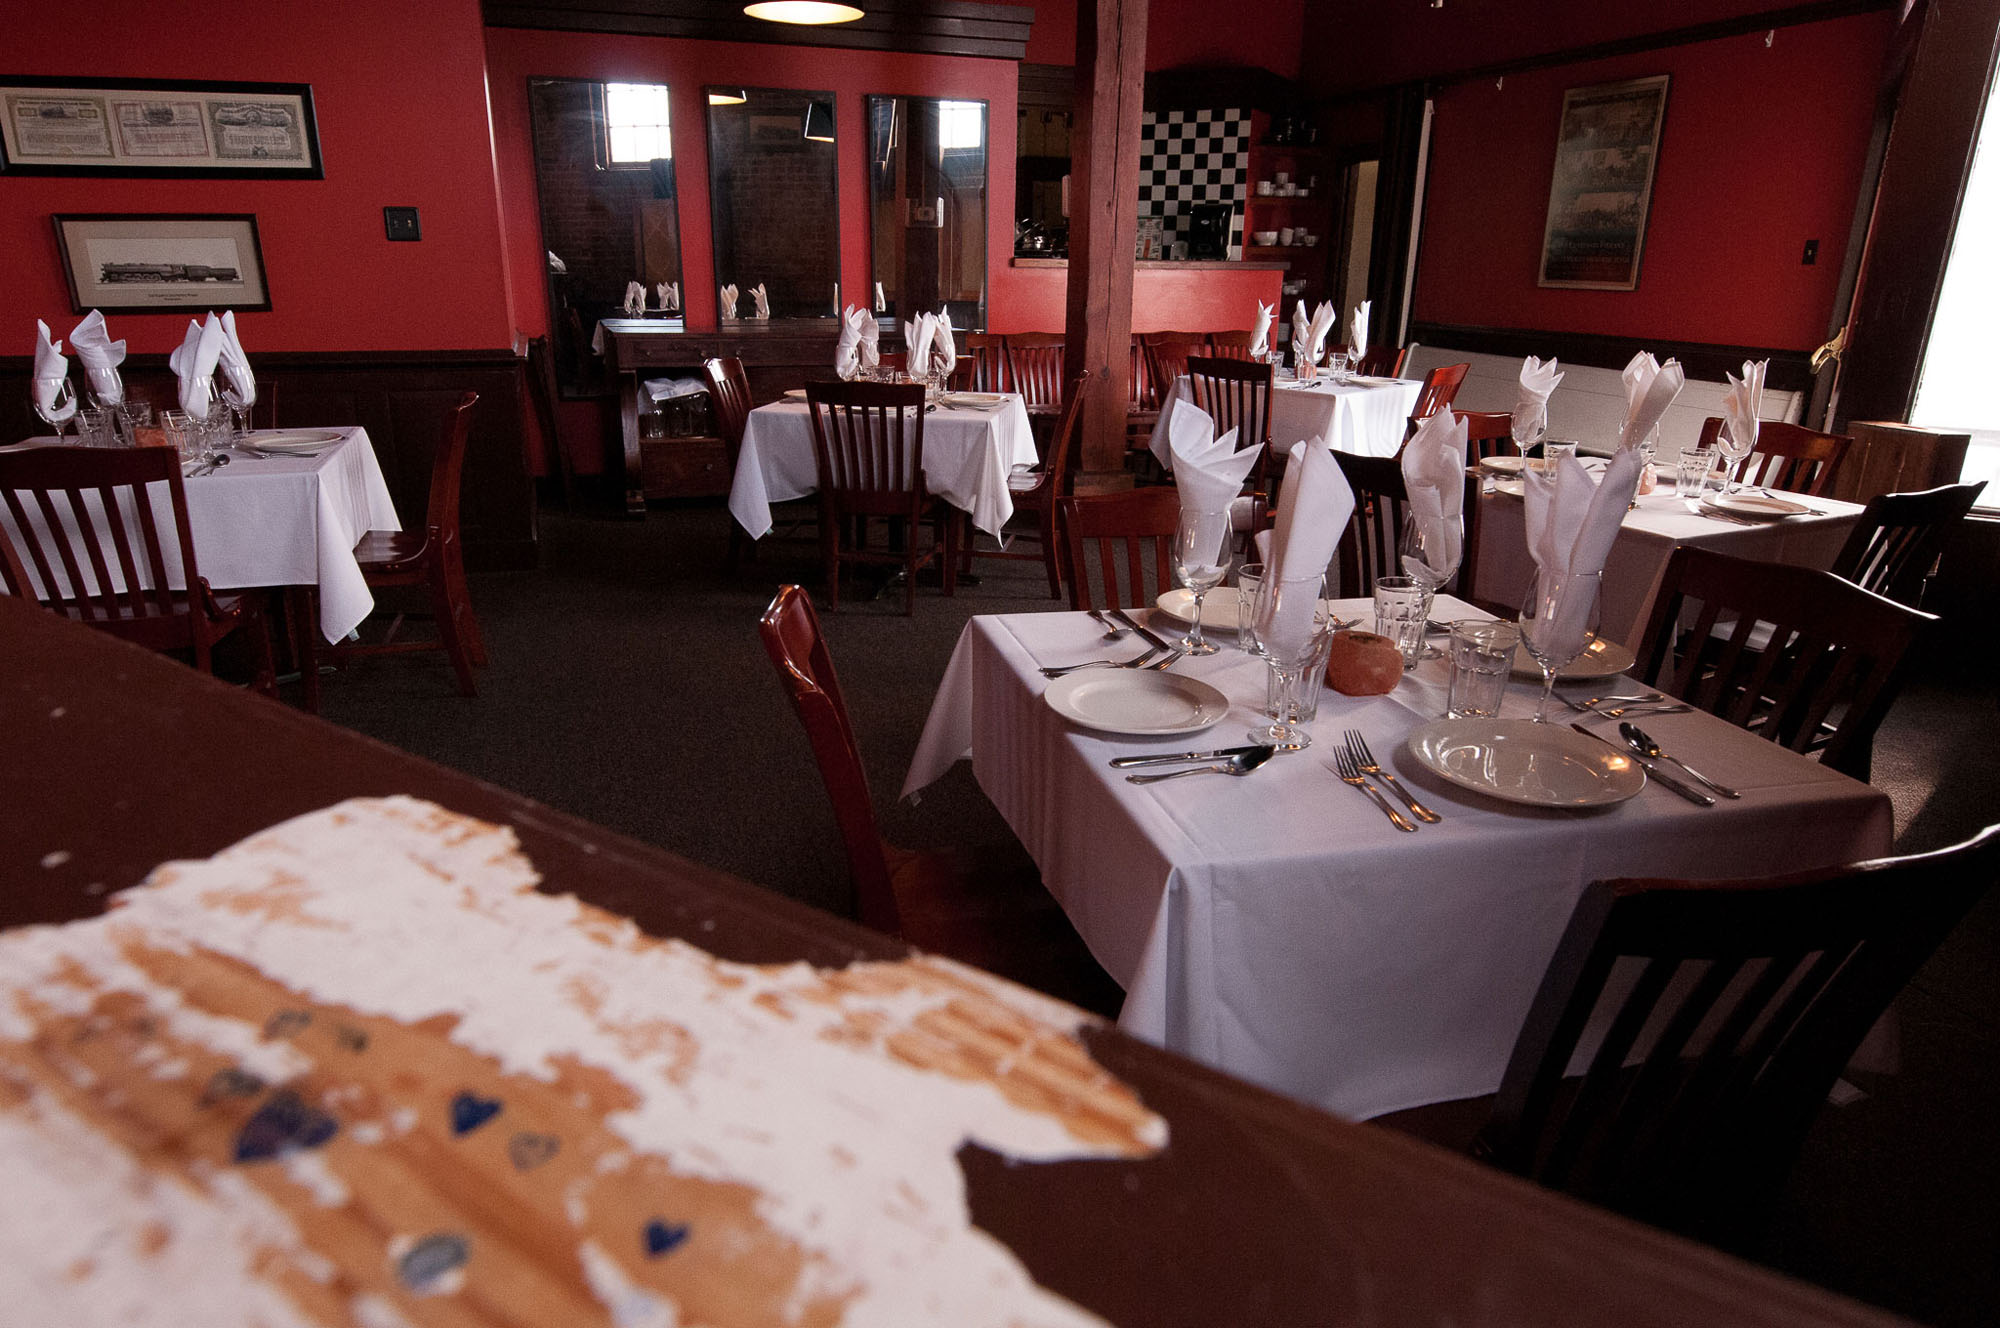 Private Dining Room - Seating up to 24For an intimate experience, ultimate surprise party location or a place to quietly thank your team, the IRON HORSE can accommodate up to 24 seated guests in our private dining room or up to 50 for a standing cocktail reception. Whether you need quiet or want to make a little noise, the IRON HORSE's Calvert Room can host your power breakfast, campaign meeting, rehearsal dinner, cast party, or good old-fashioned birthday. Menu options may be drawn from our current menus or custom built to your tastes.